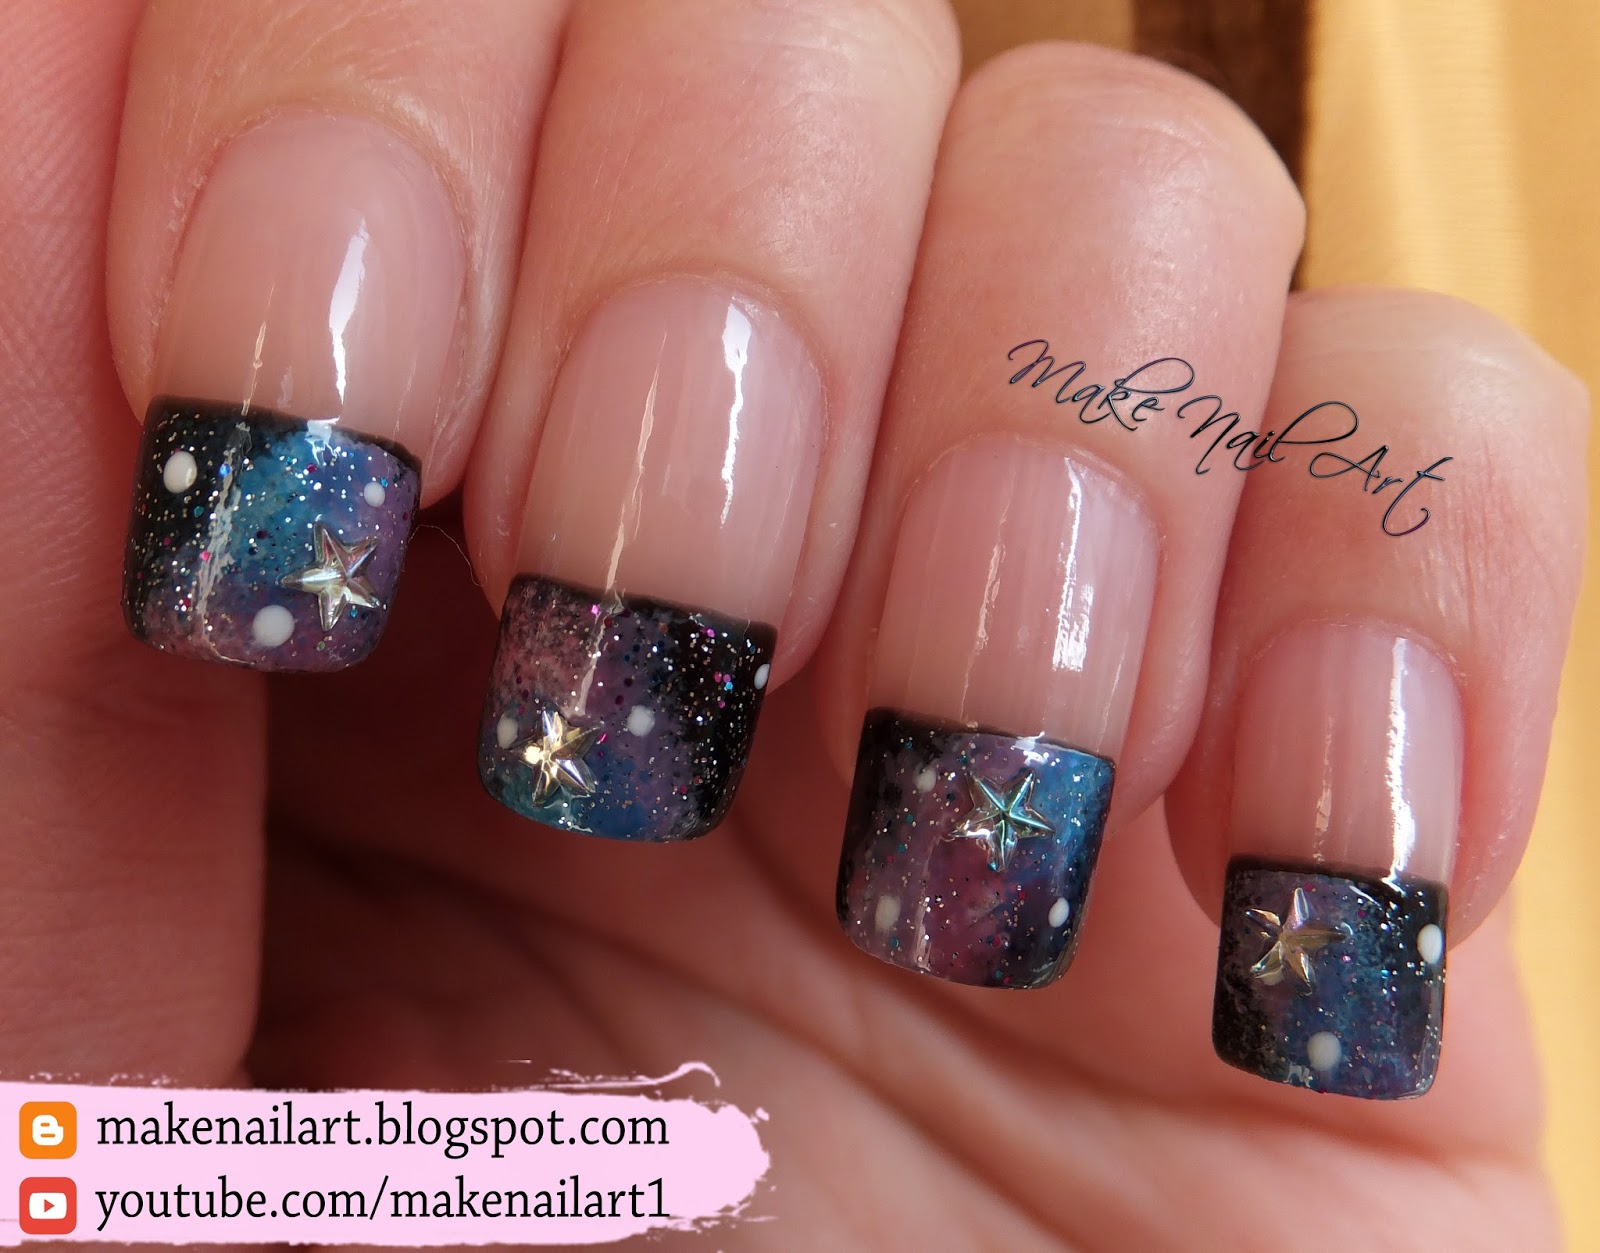 Make nail art april 2016 i think this nail art design is perfect for every day and its one of my favourite ive ever done i hope youll like it solutioingenieria Images